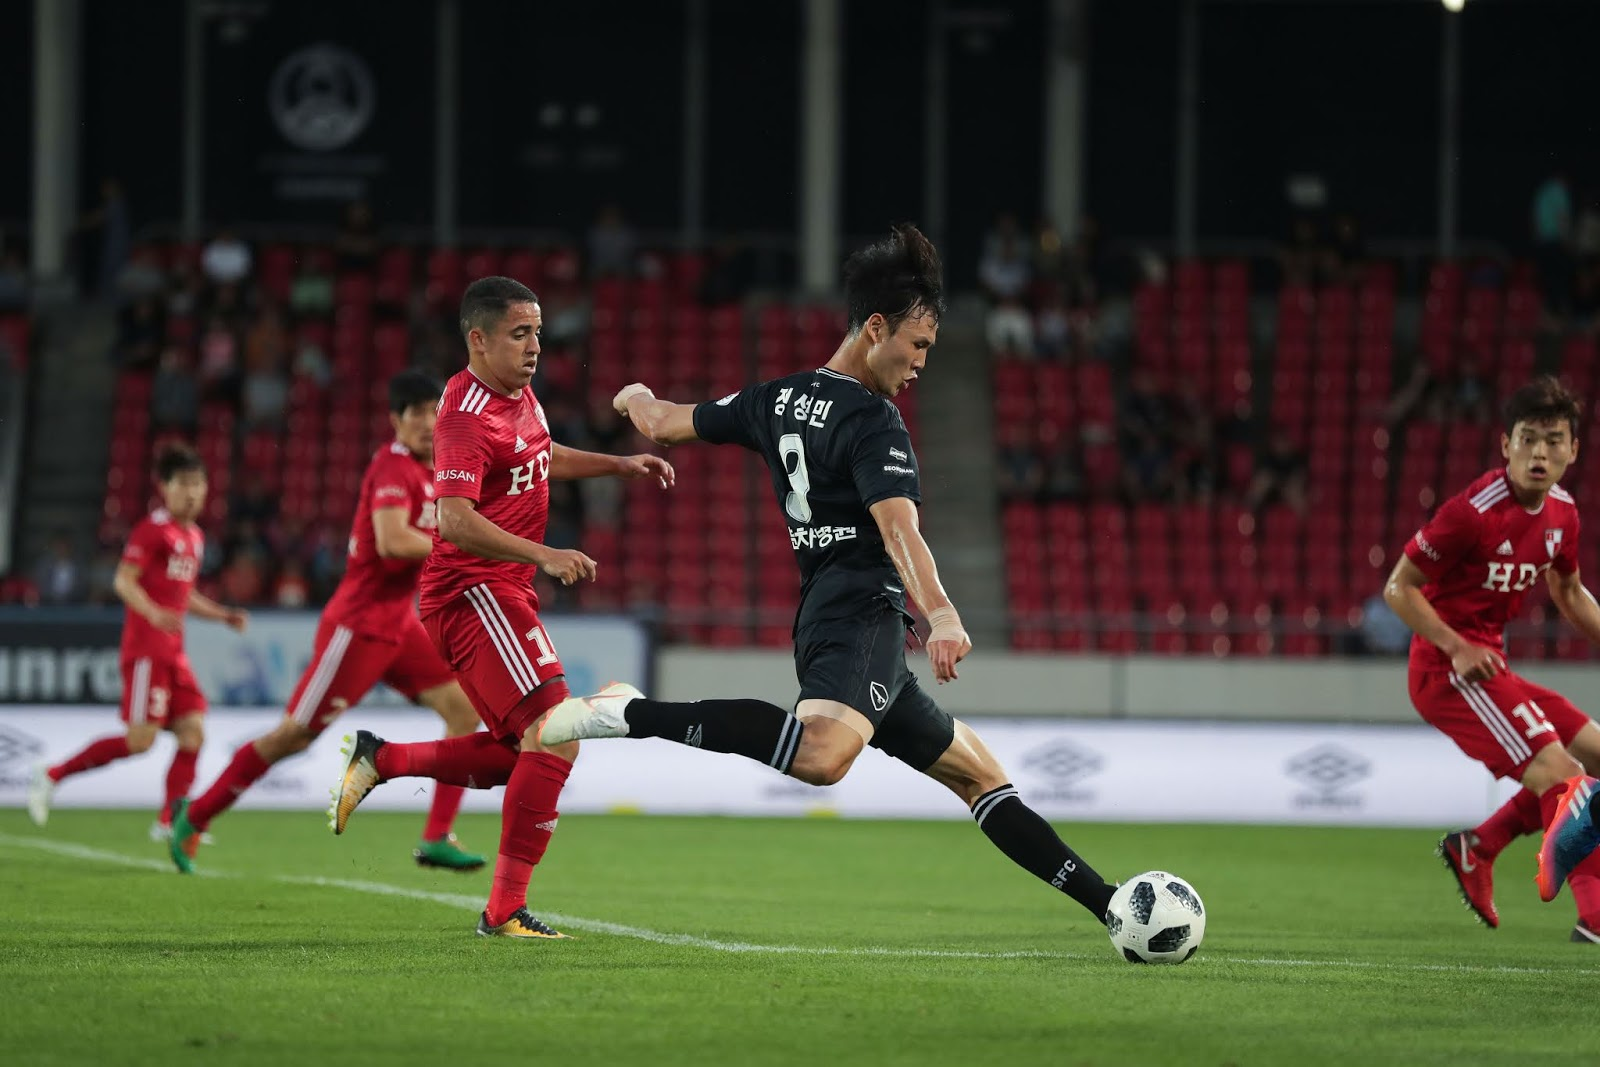 Preview: Seongnam FC vs Busan IPark K League 2